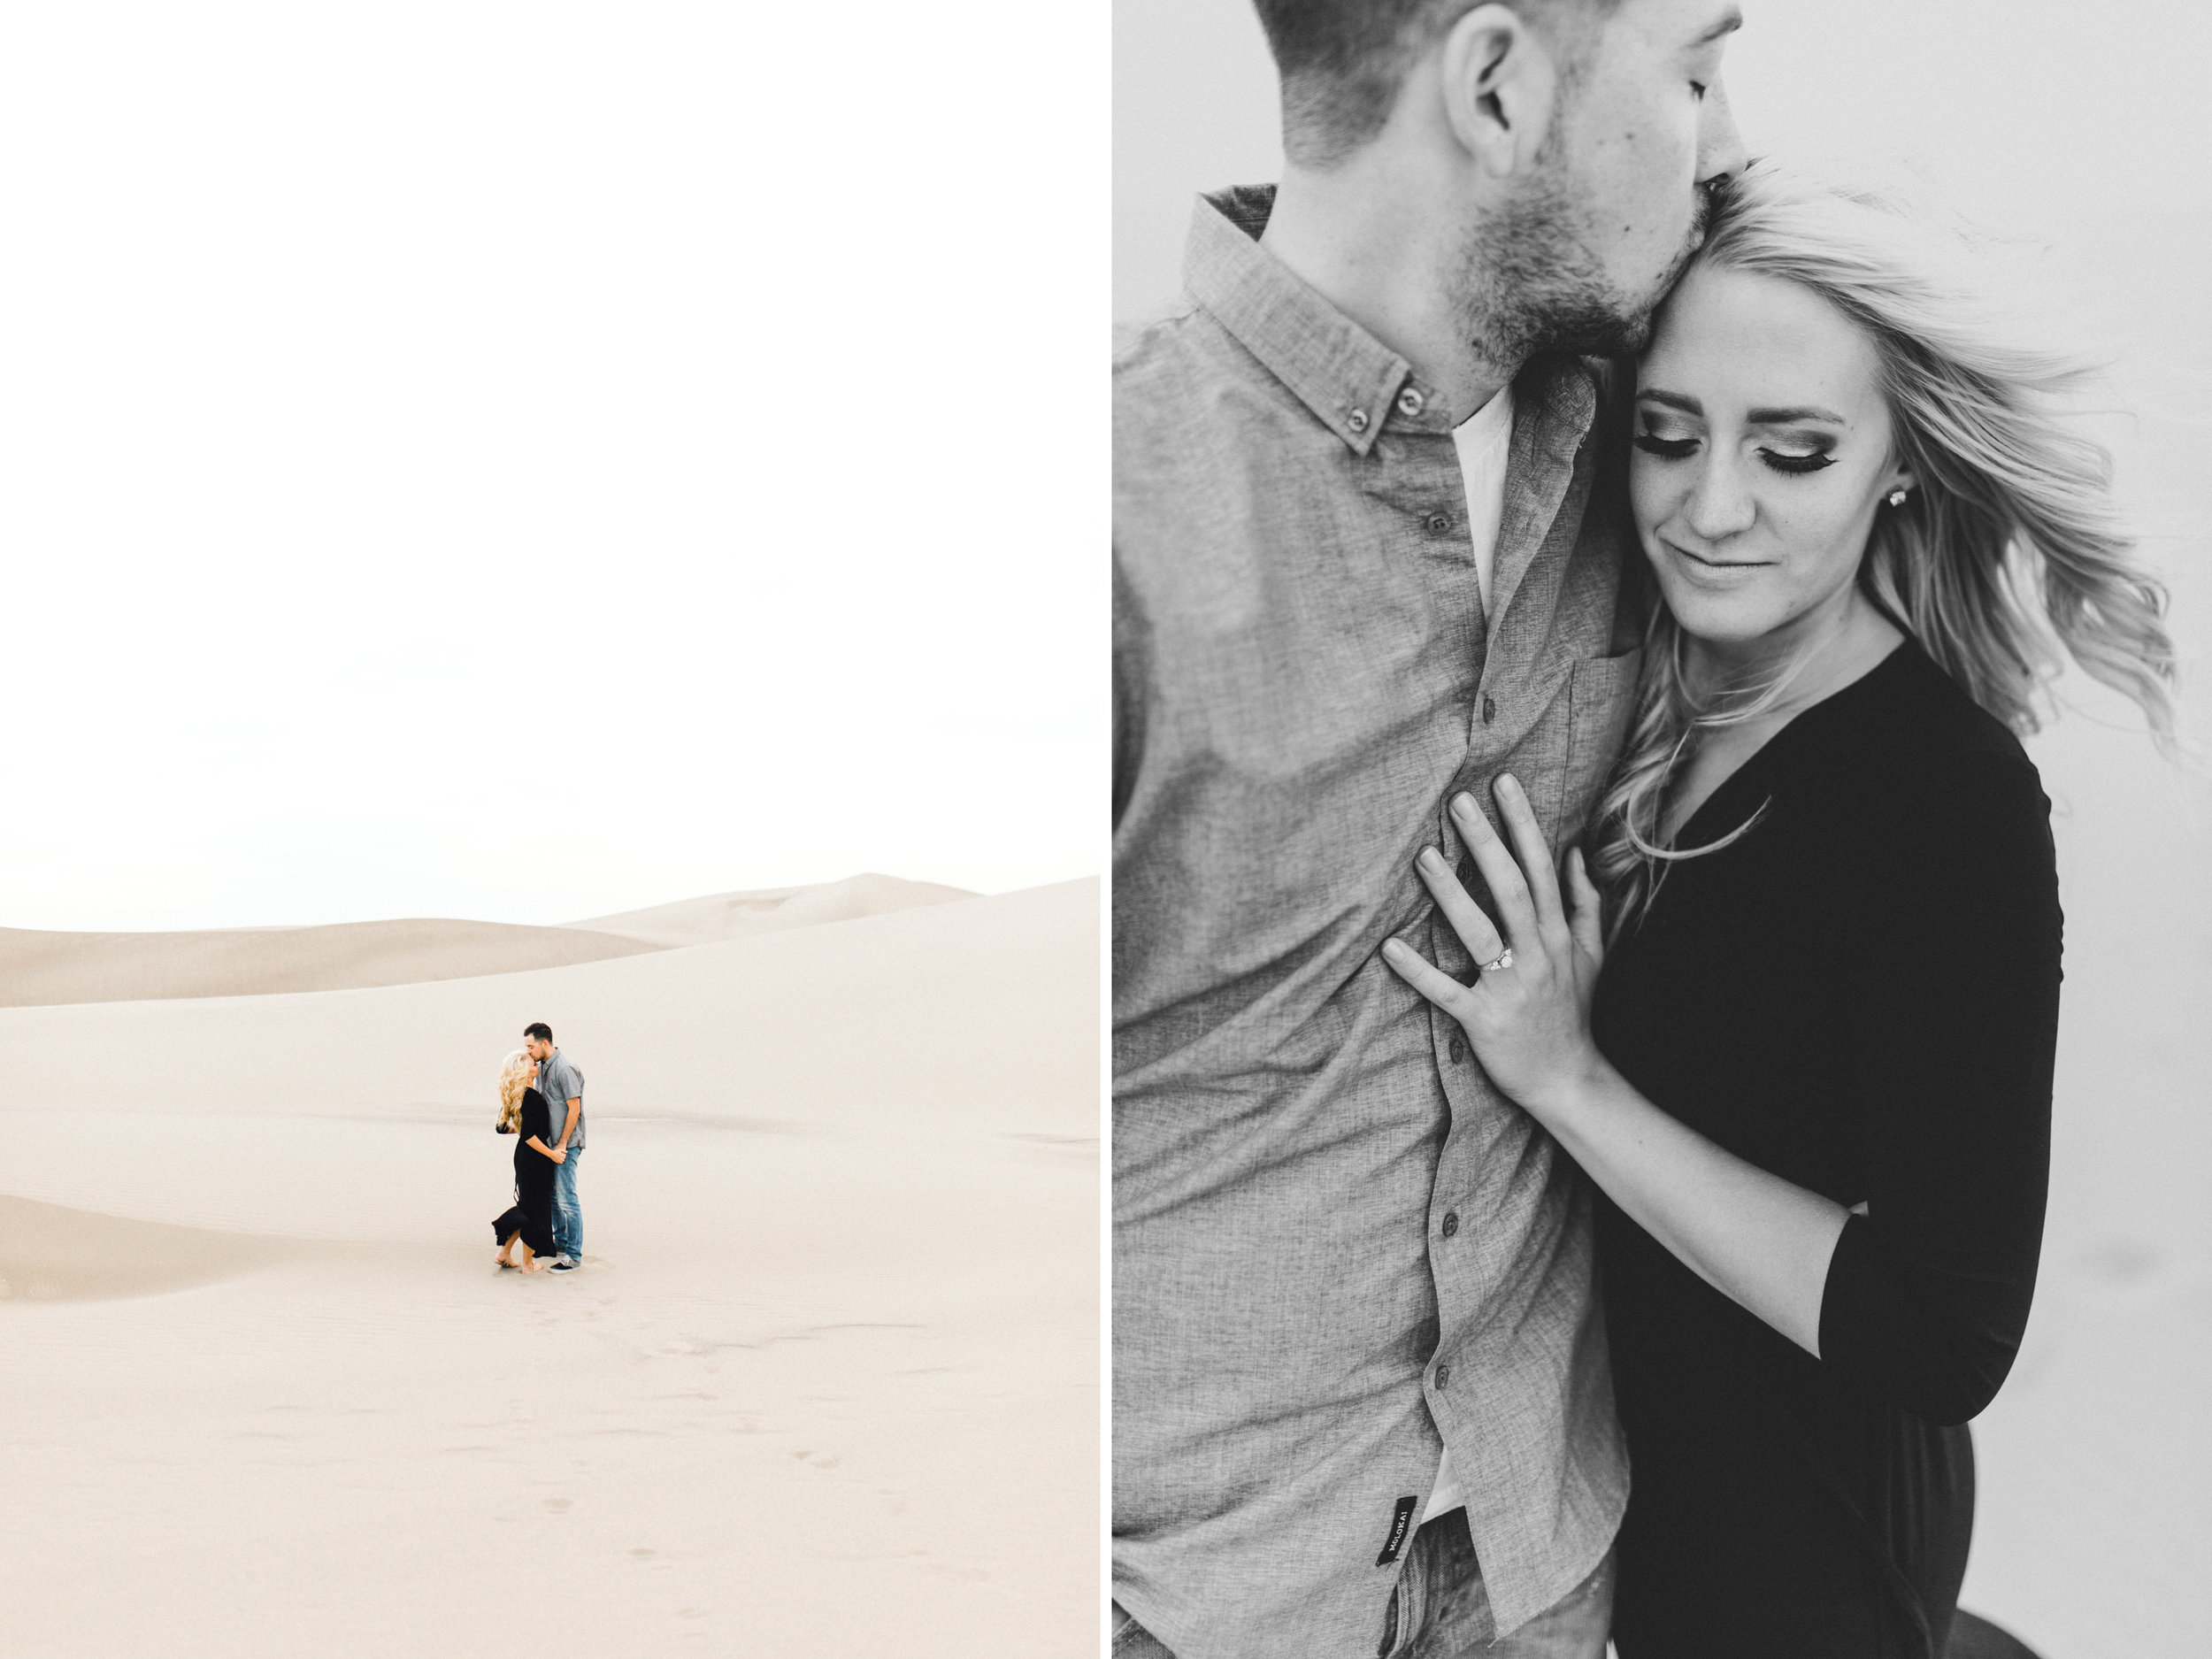 rexburg-idaho-sand-dunes-engagement-photographer-august-trevor10.jpg